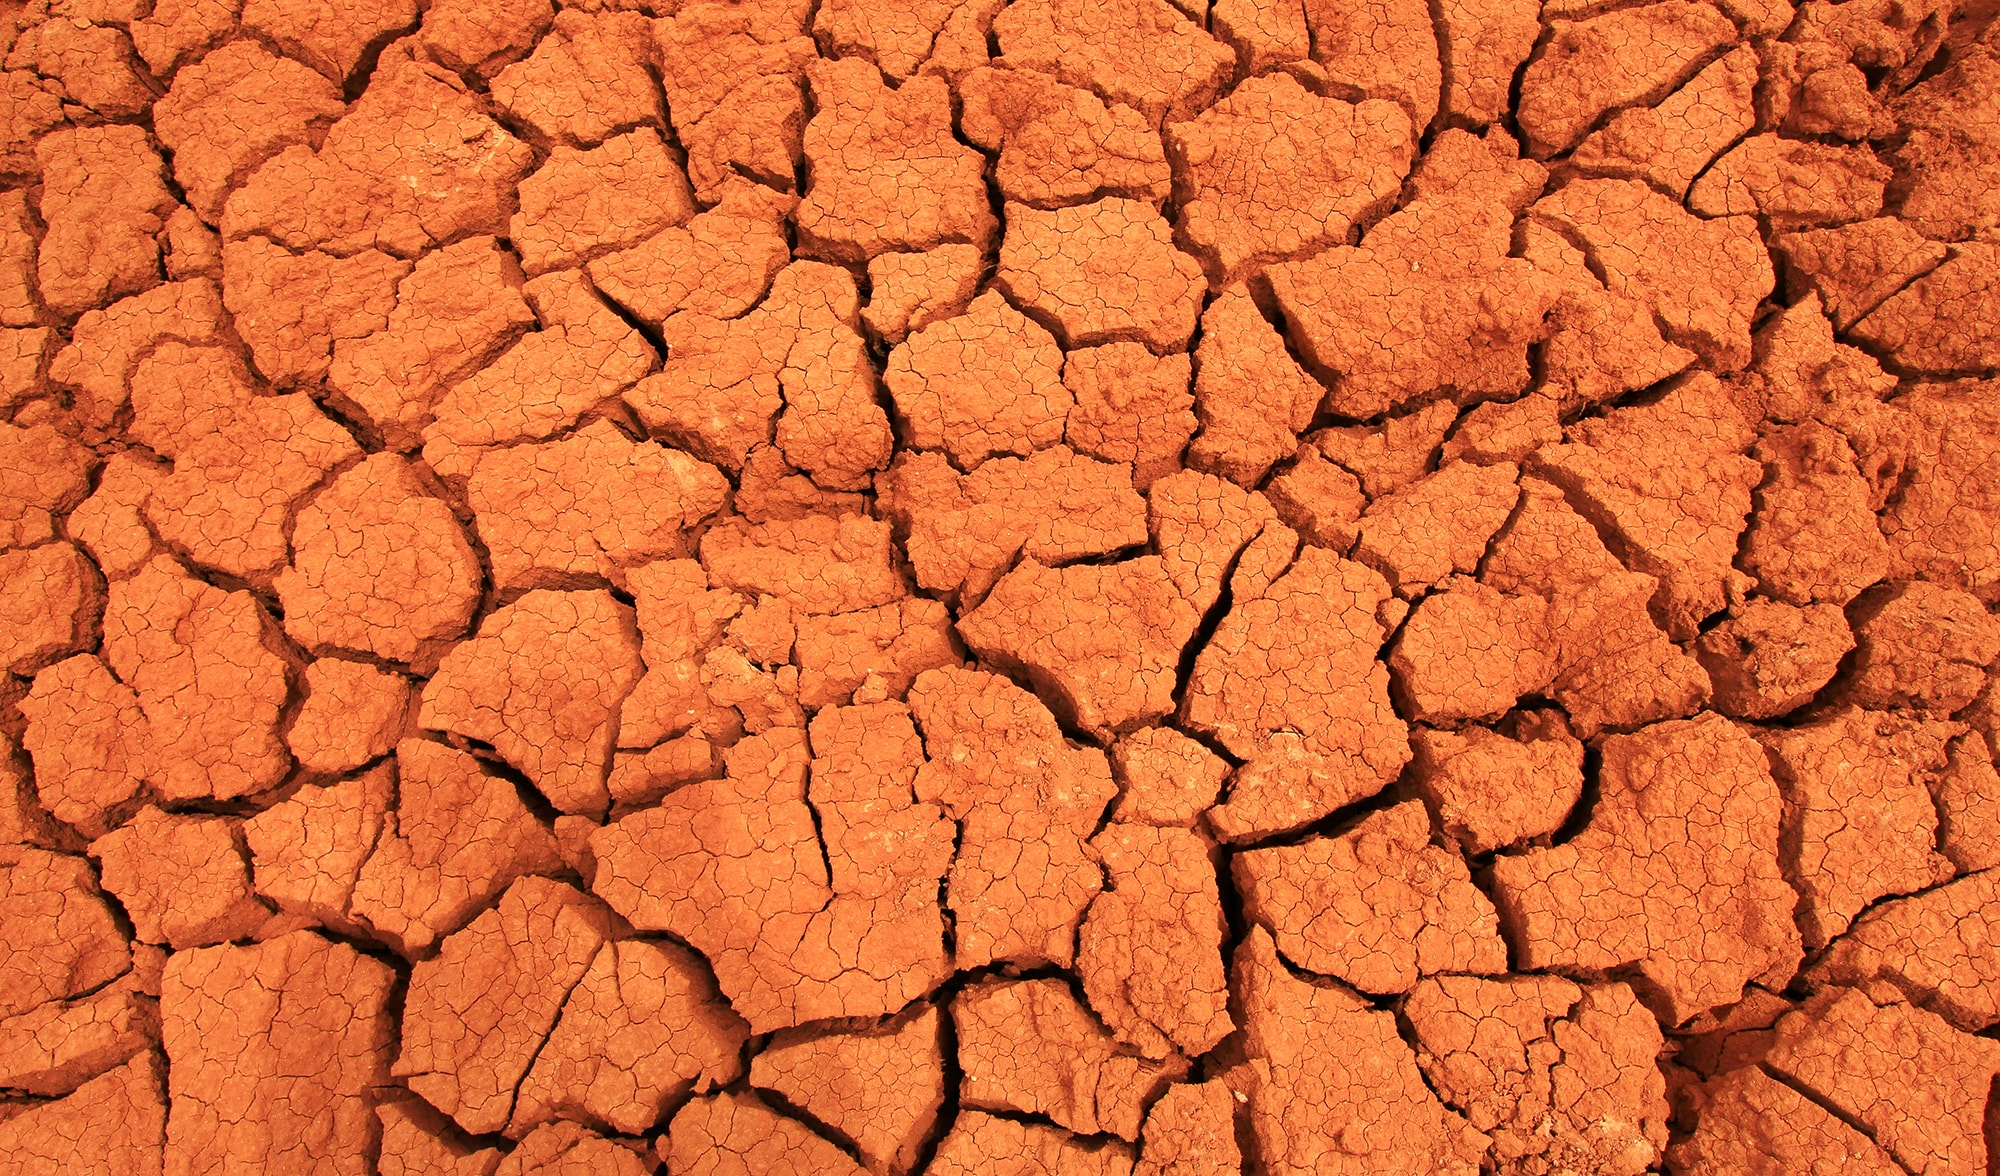 Not a single good news Highlights from the IPCC report on climate change